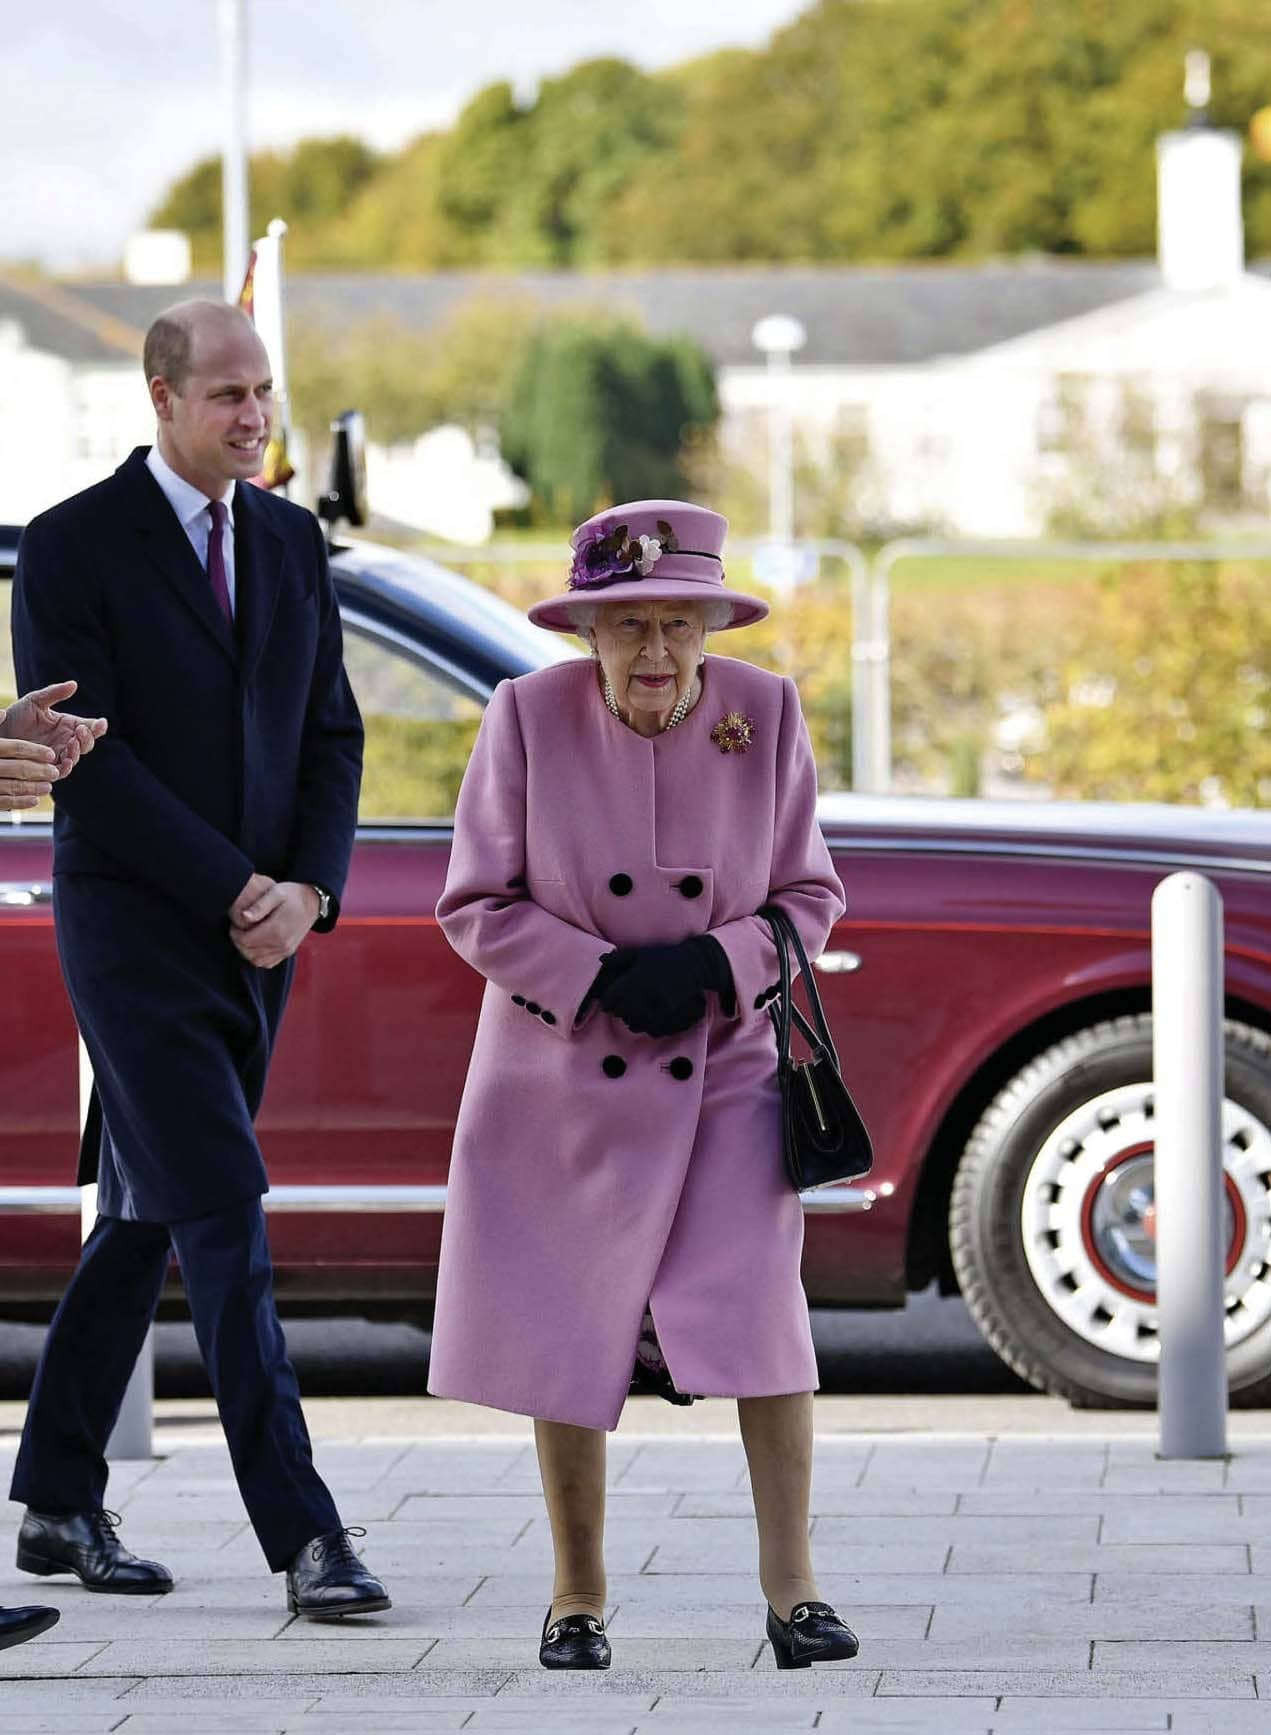 THE QUEEN'S 'MATERNAL' BOND WITH WILLIAM